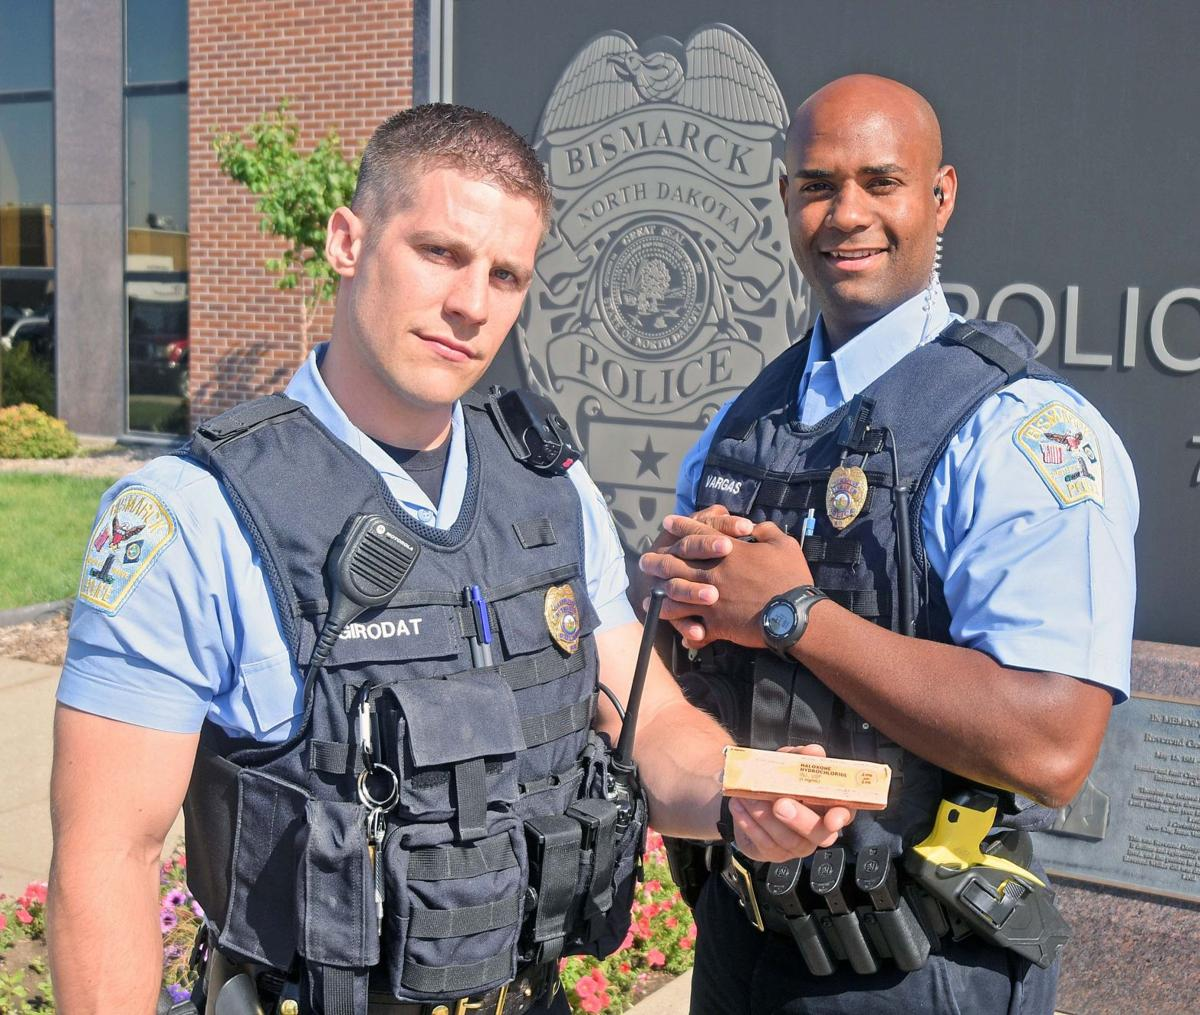 Police Officers Damian Girodat, left, and Melvin Vargas